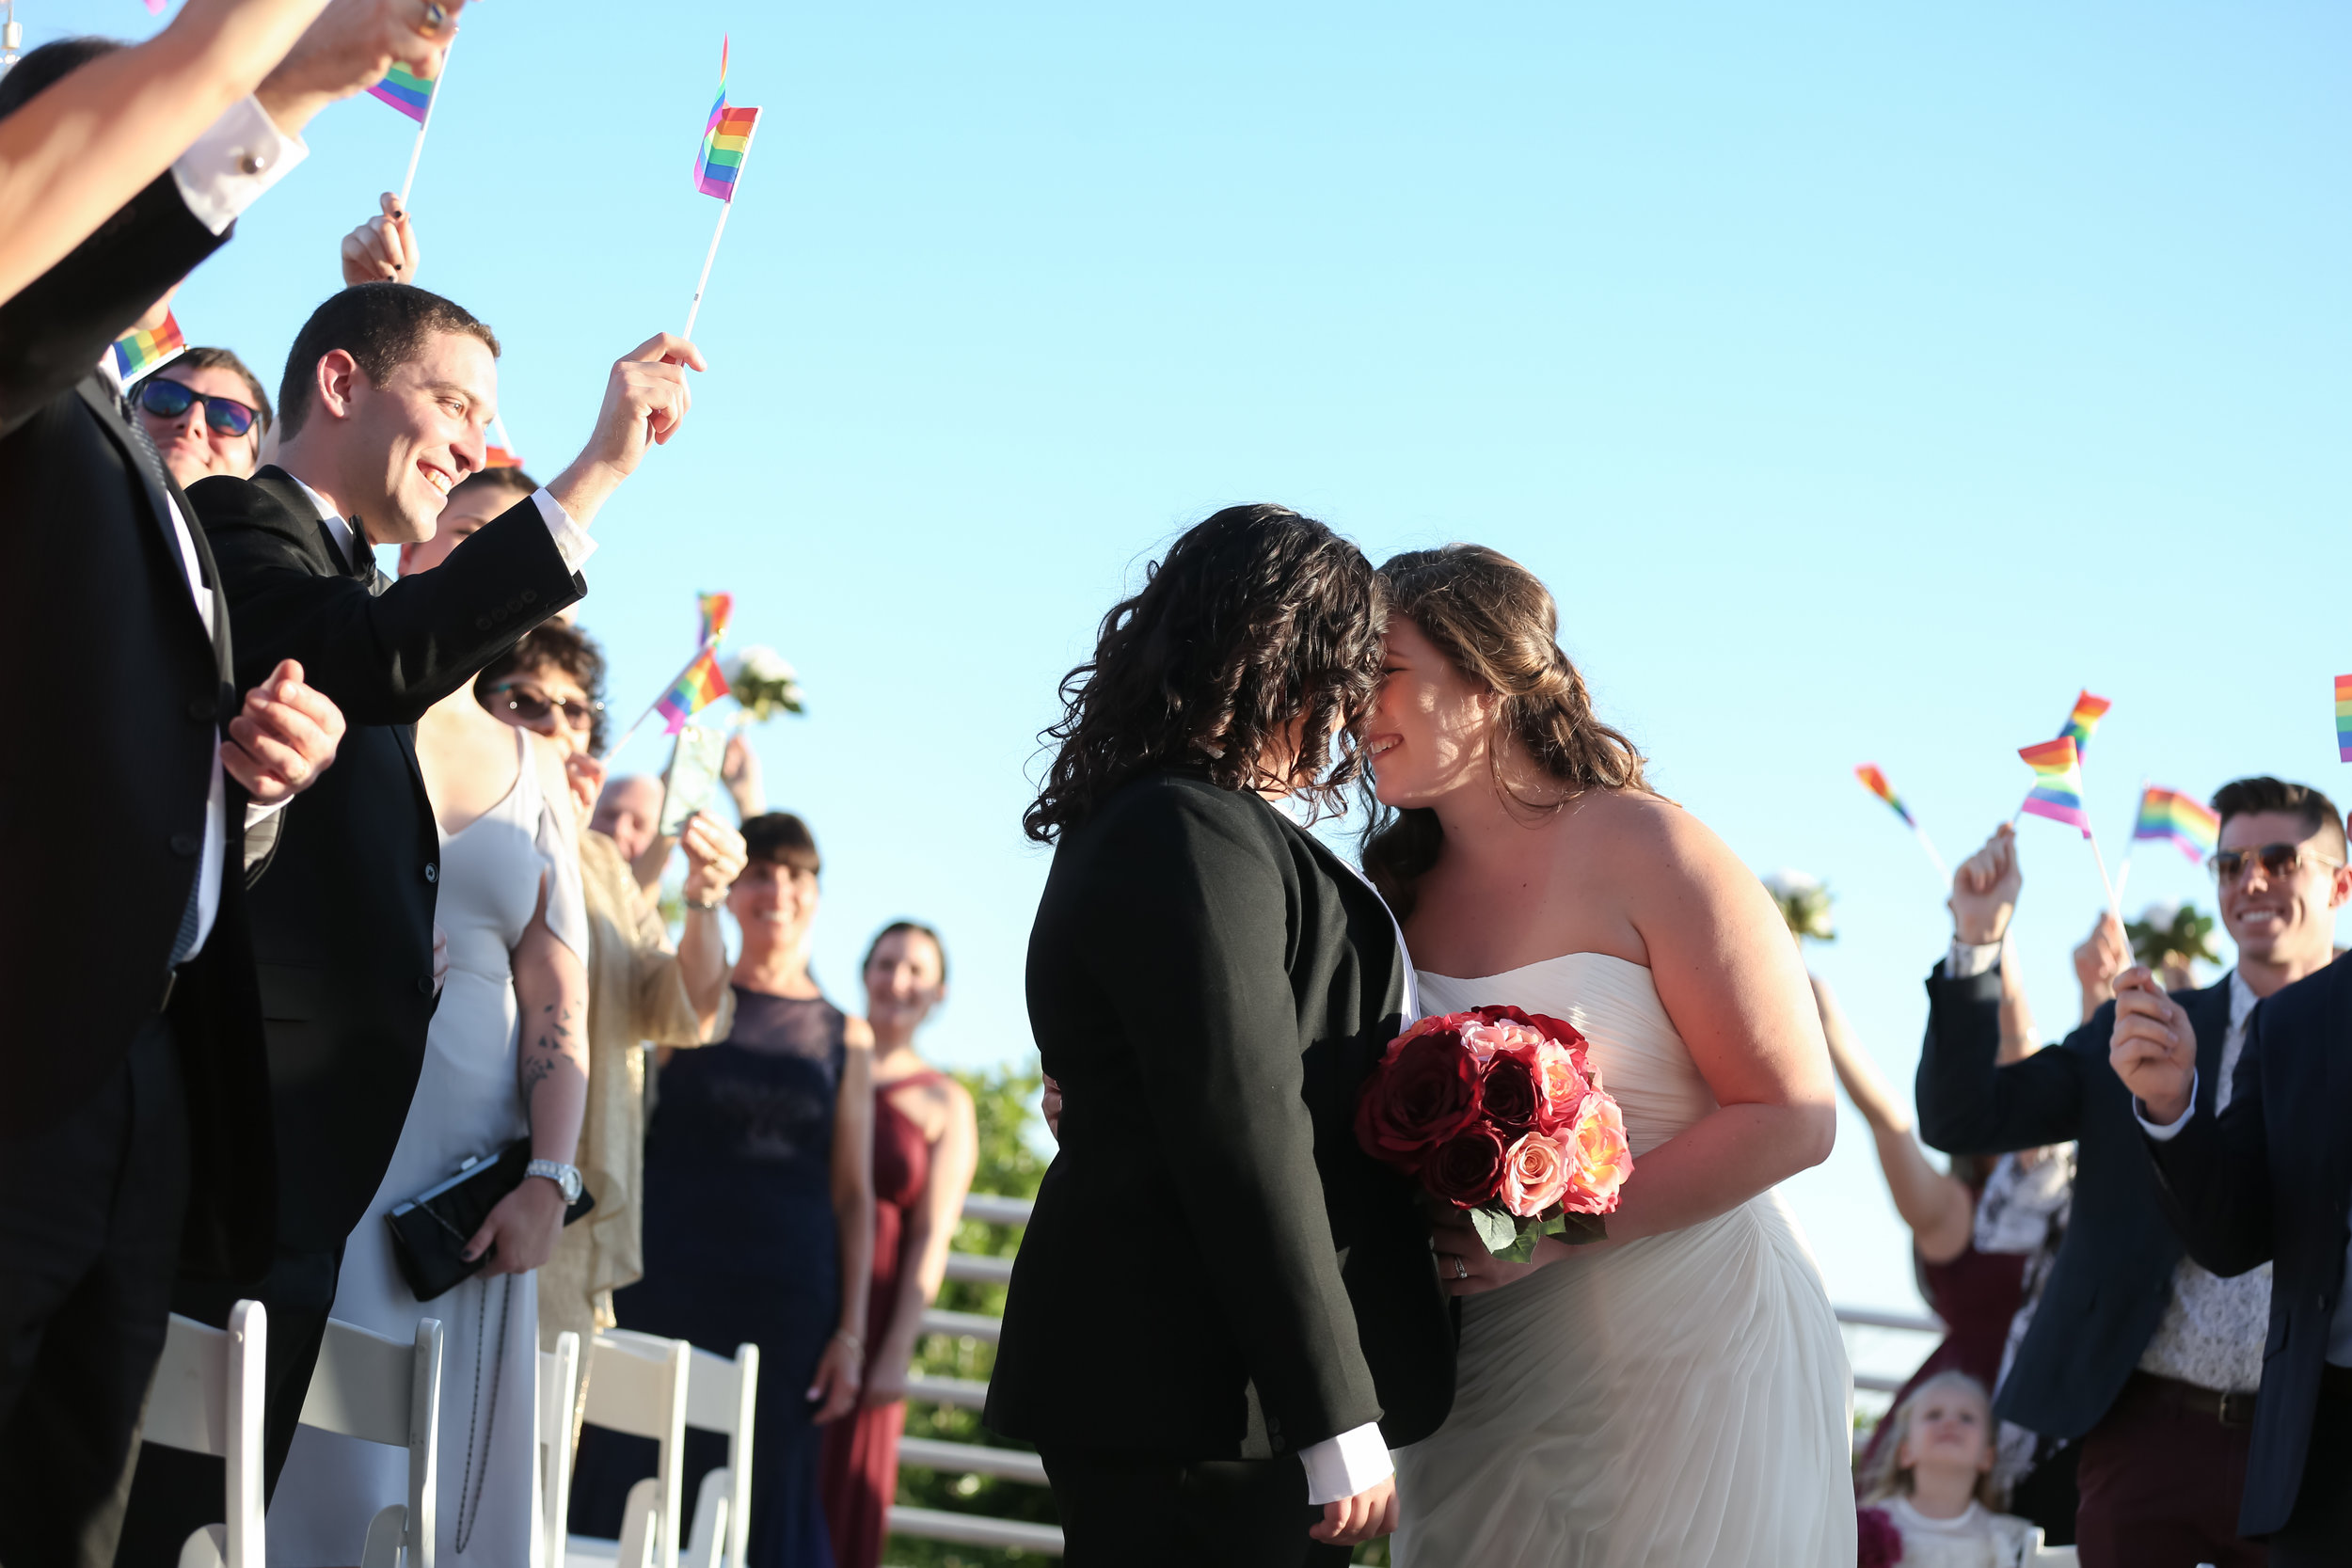 orlando-pride-same-sex-wedding-gay-rainbow-flag-orlando-wedding-photographer-live-happy-studio.jpg